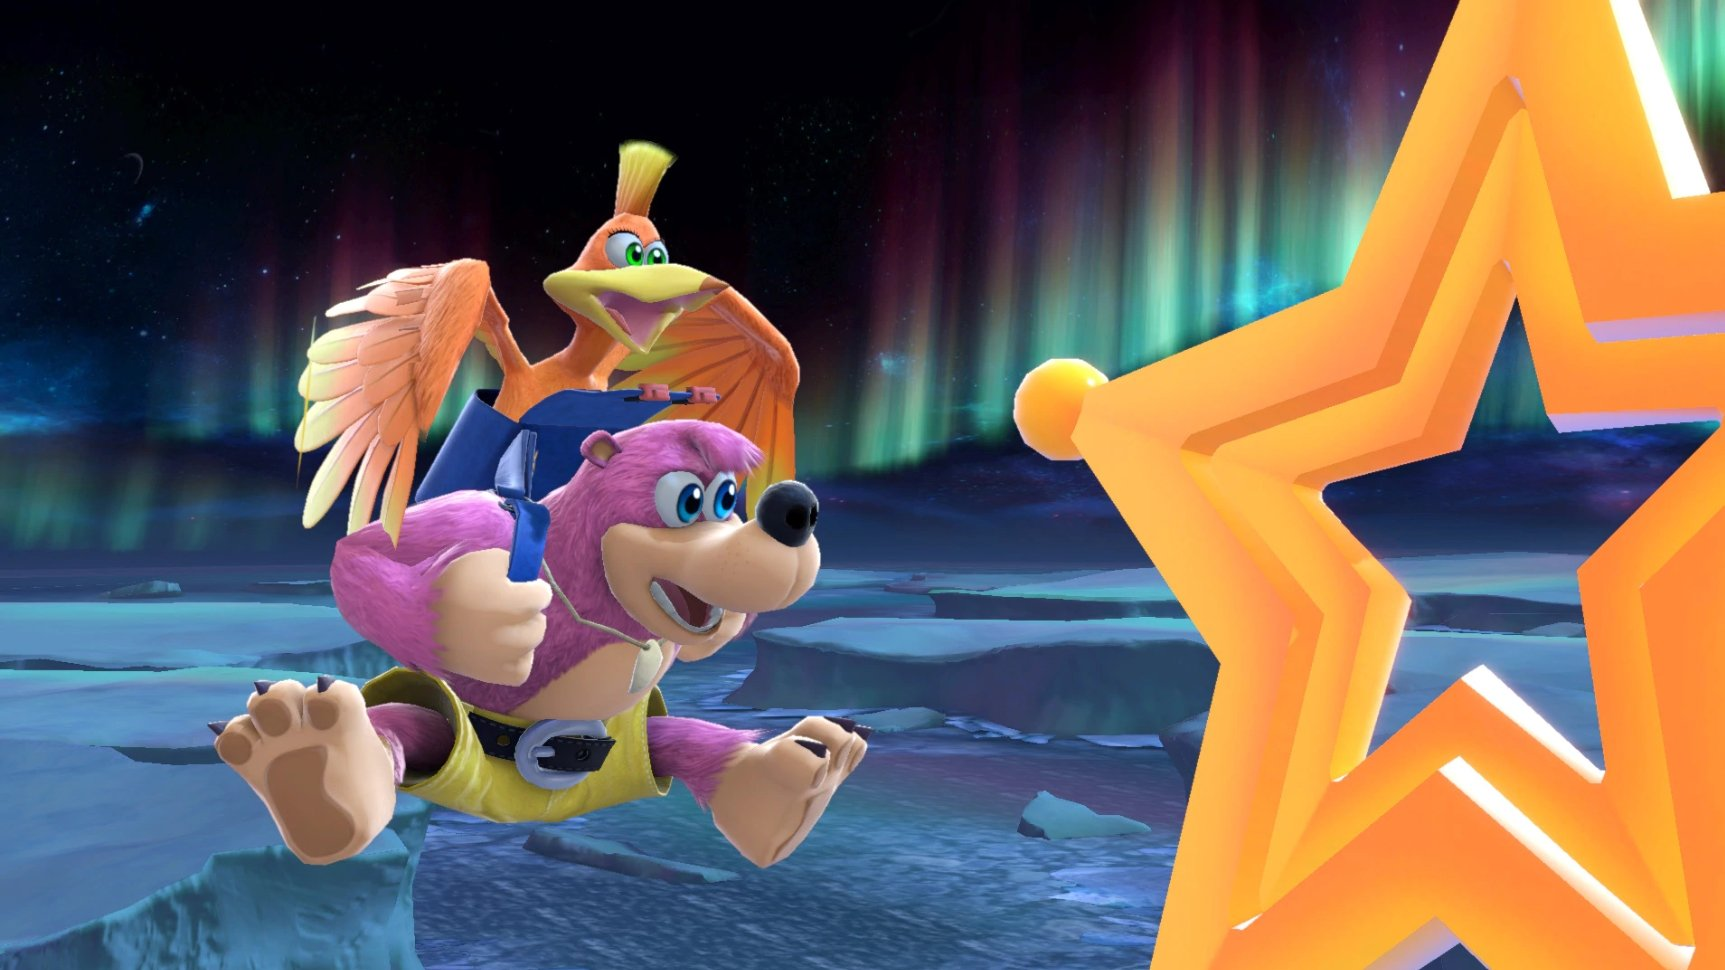 Banjo-Kazooie Smash Ultimate screenshots